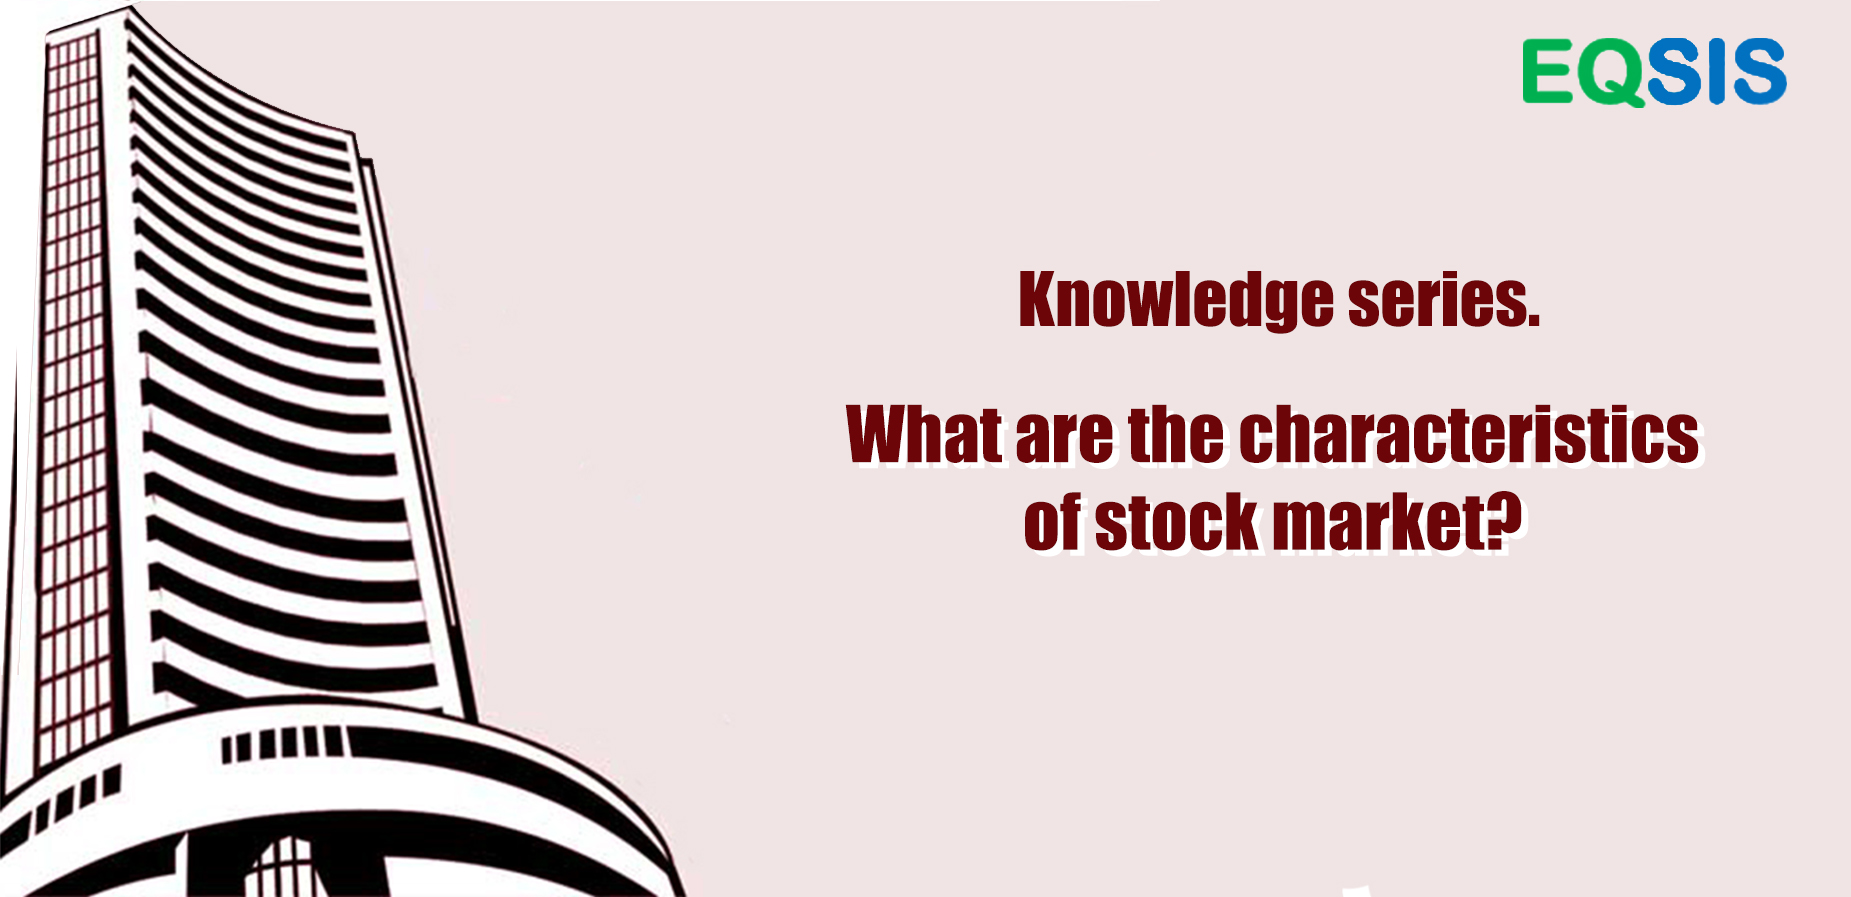 What are the characteristics of stock market